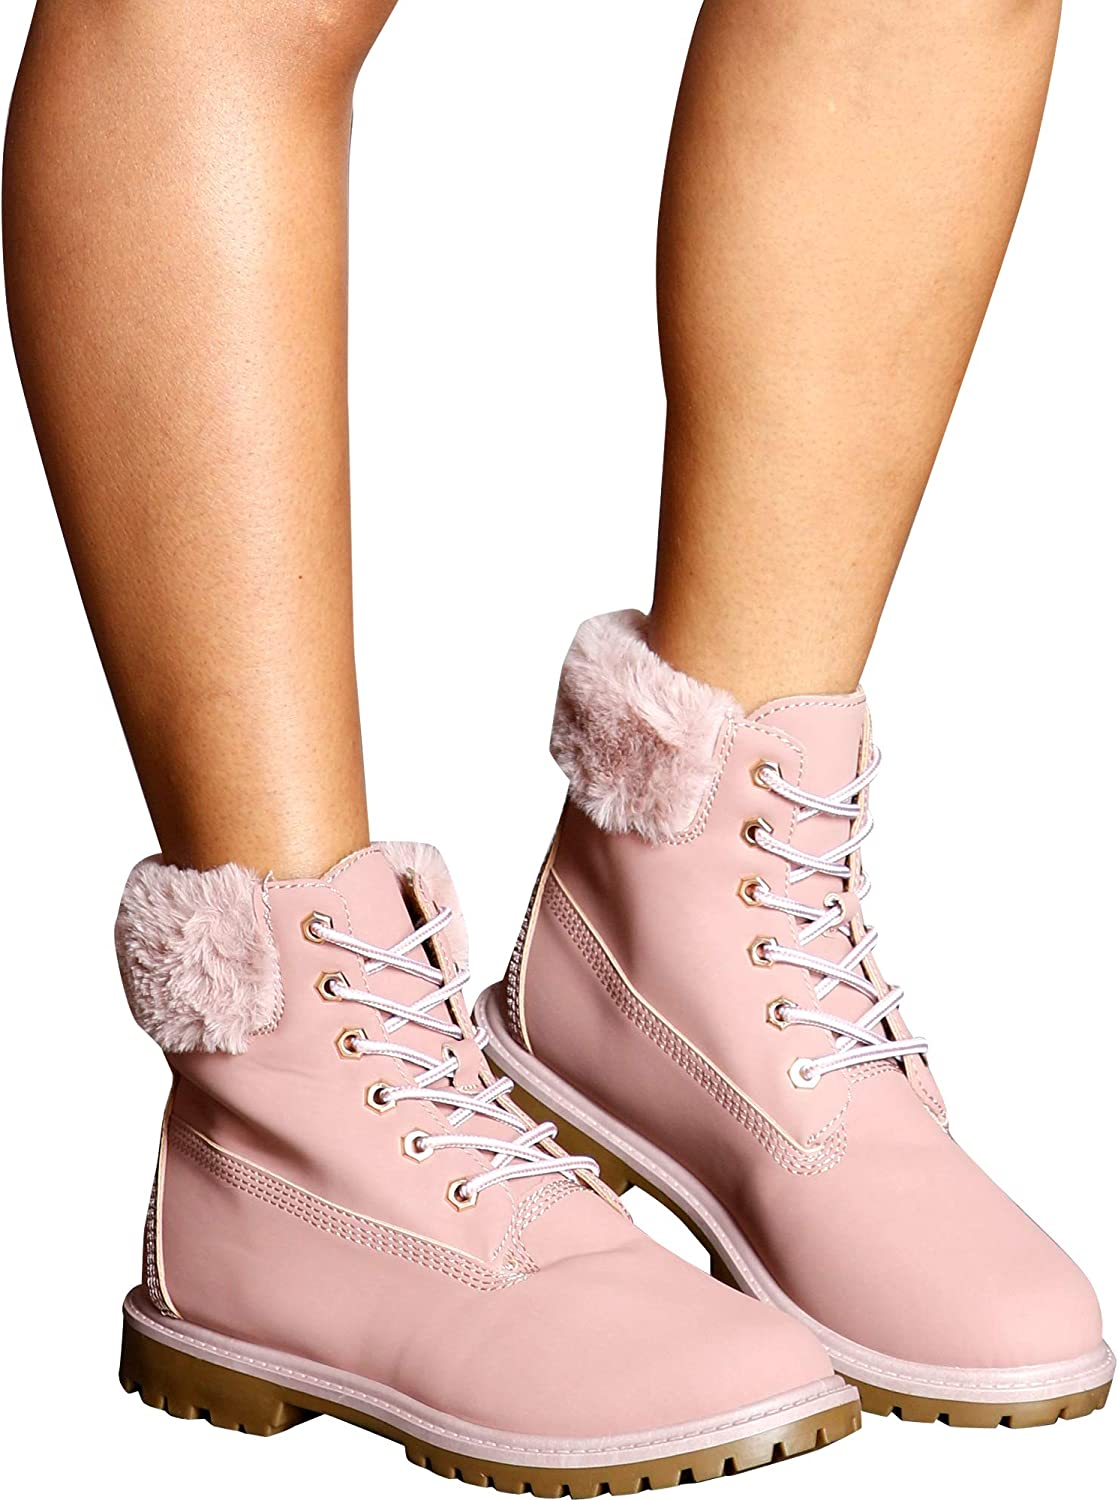 Bamboo Women's Casual Fur Top Lace Up Ankle Booties Pink